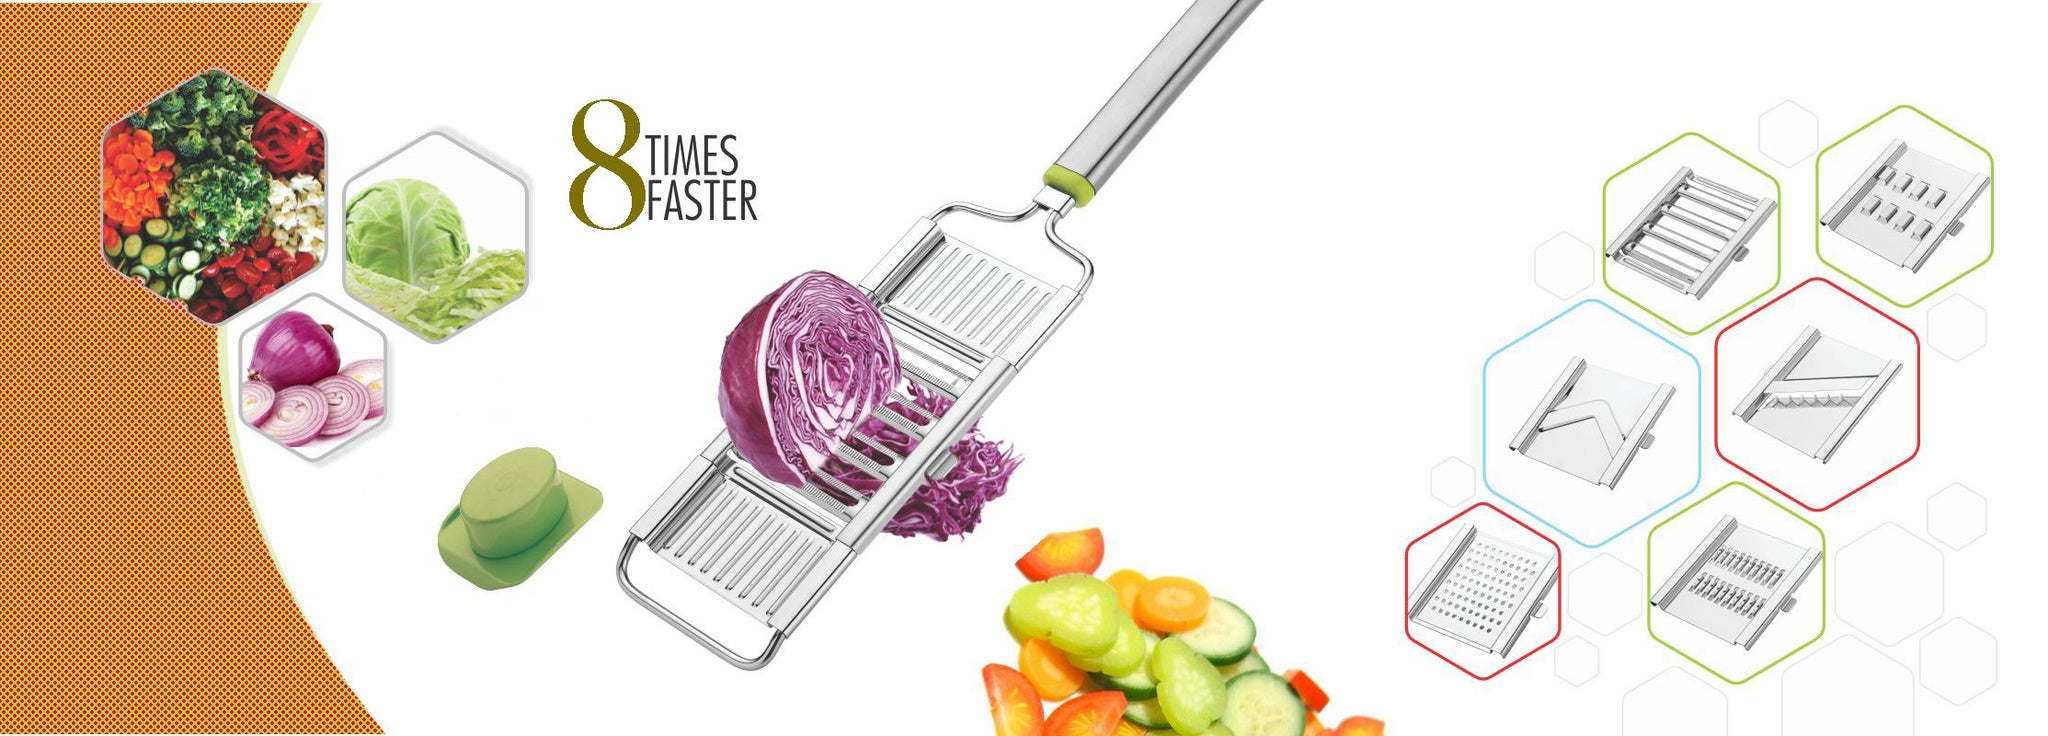 6 in 1 Stainless Steel Kitchen Chips Chopper Cutter Slicer and Grater with Handle